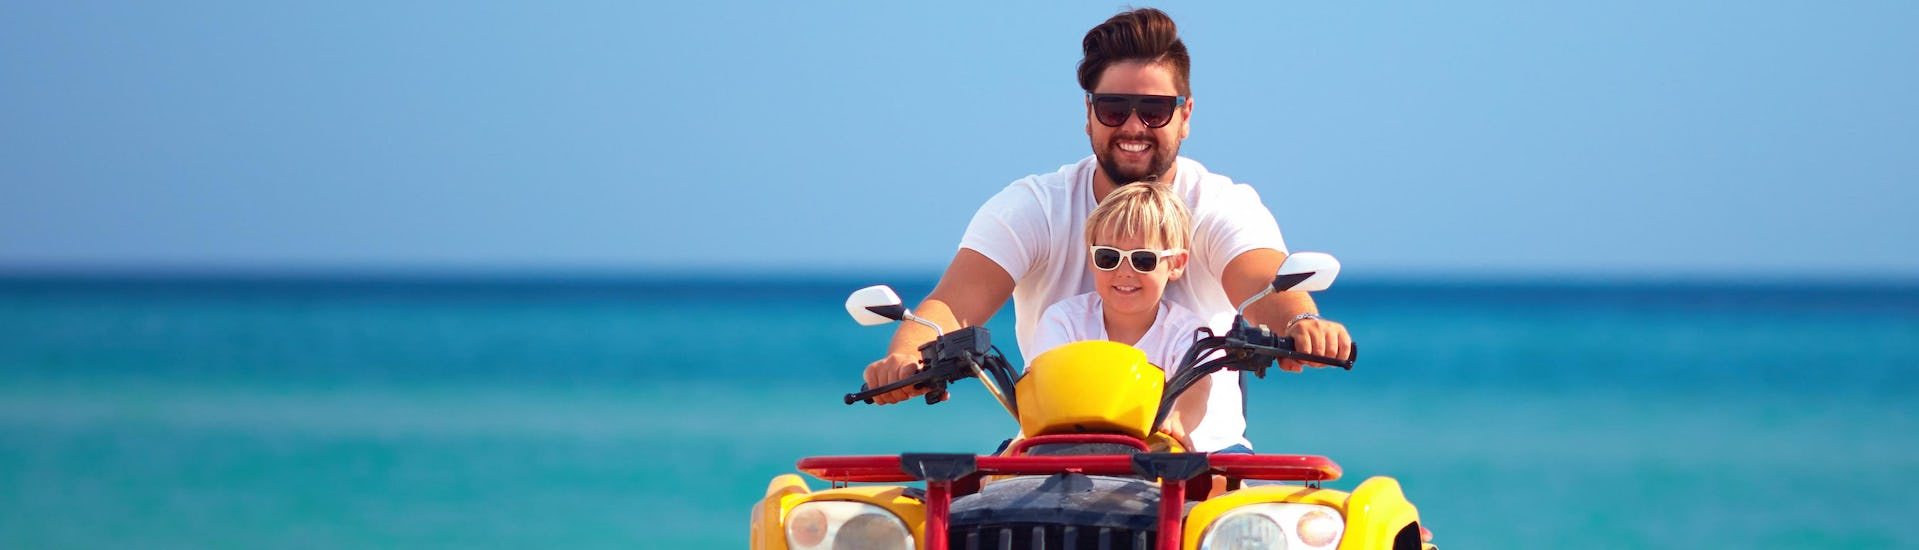 A young dad quad biking with his son in the holiday destination of Sierra de las Nieves.